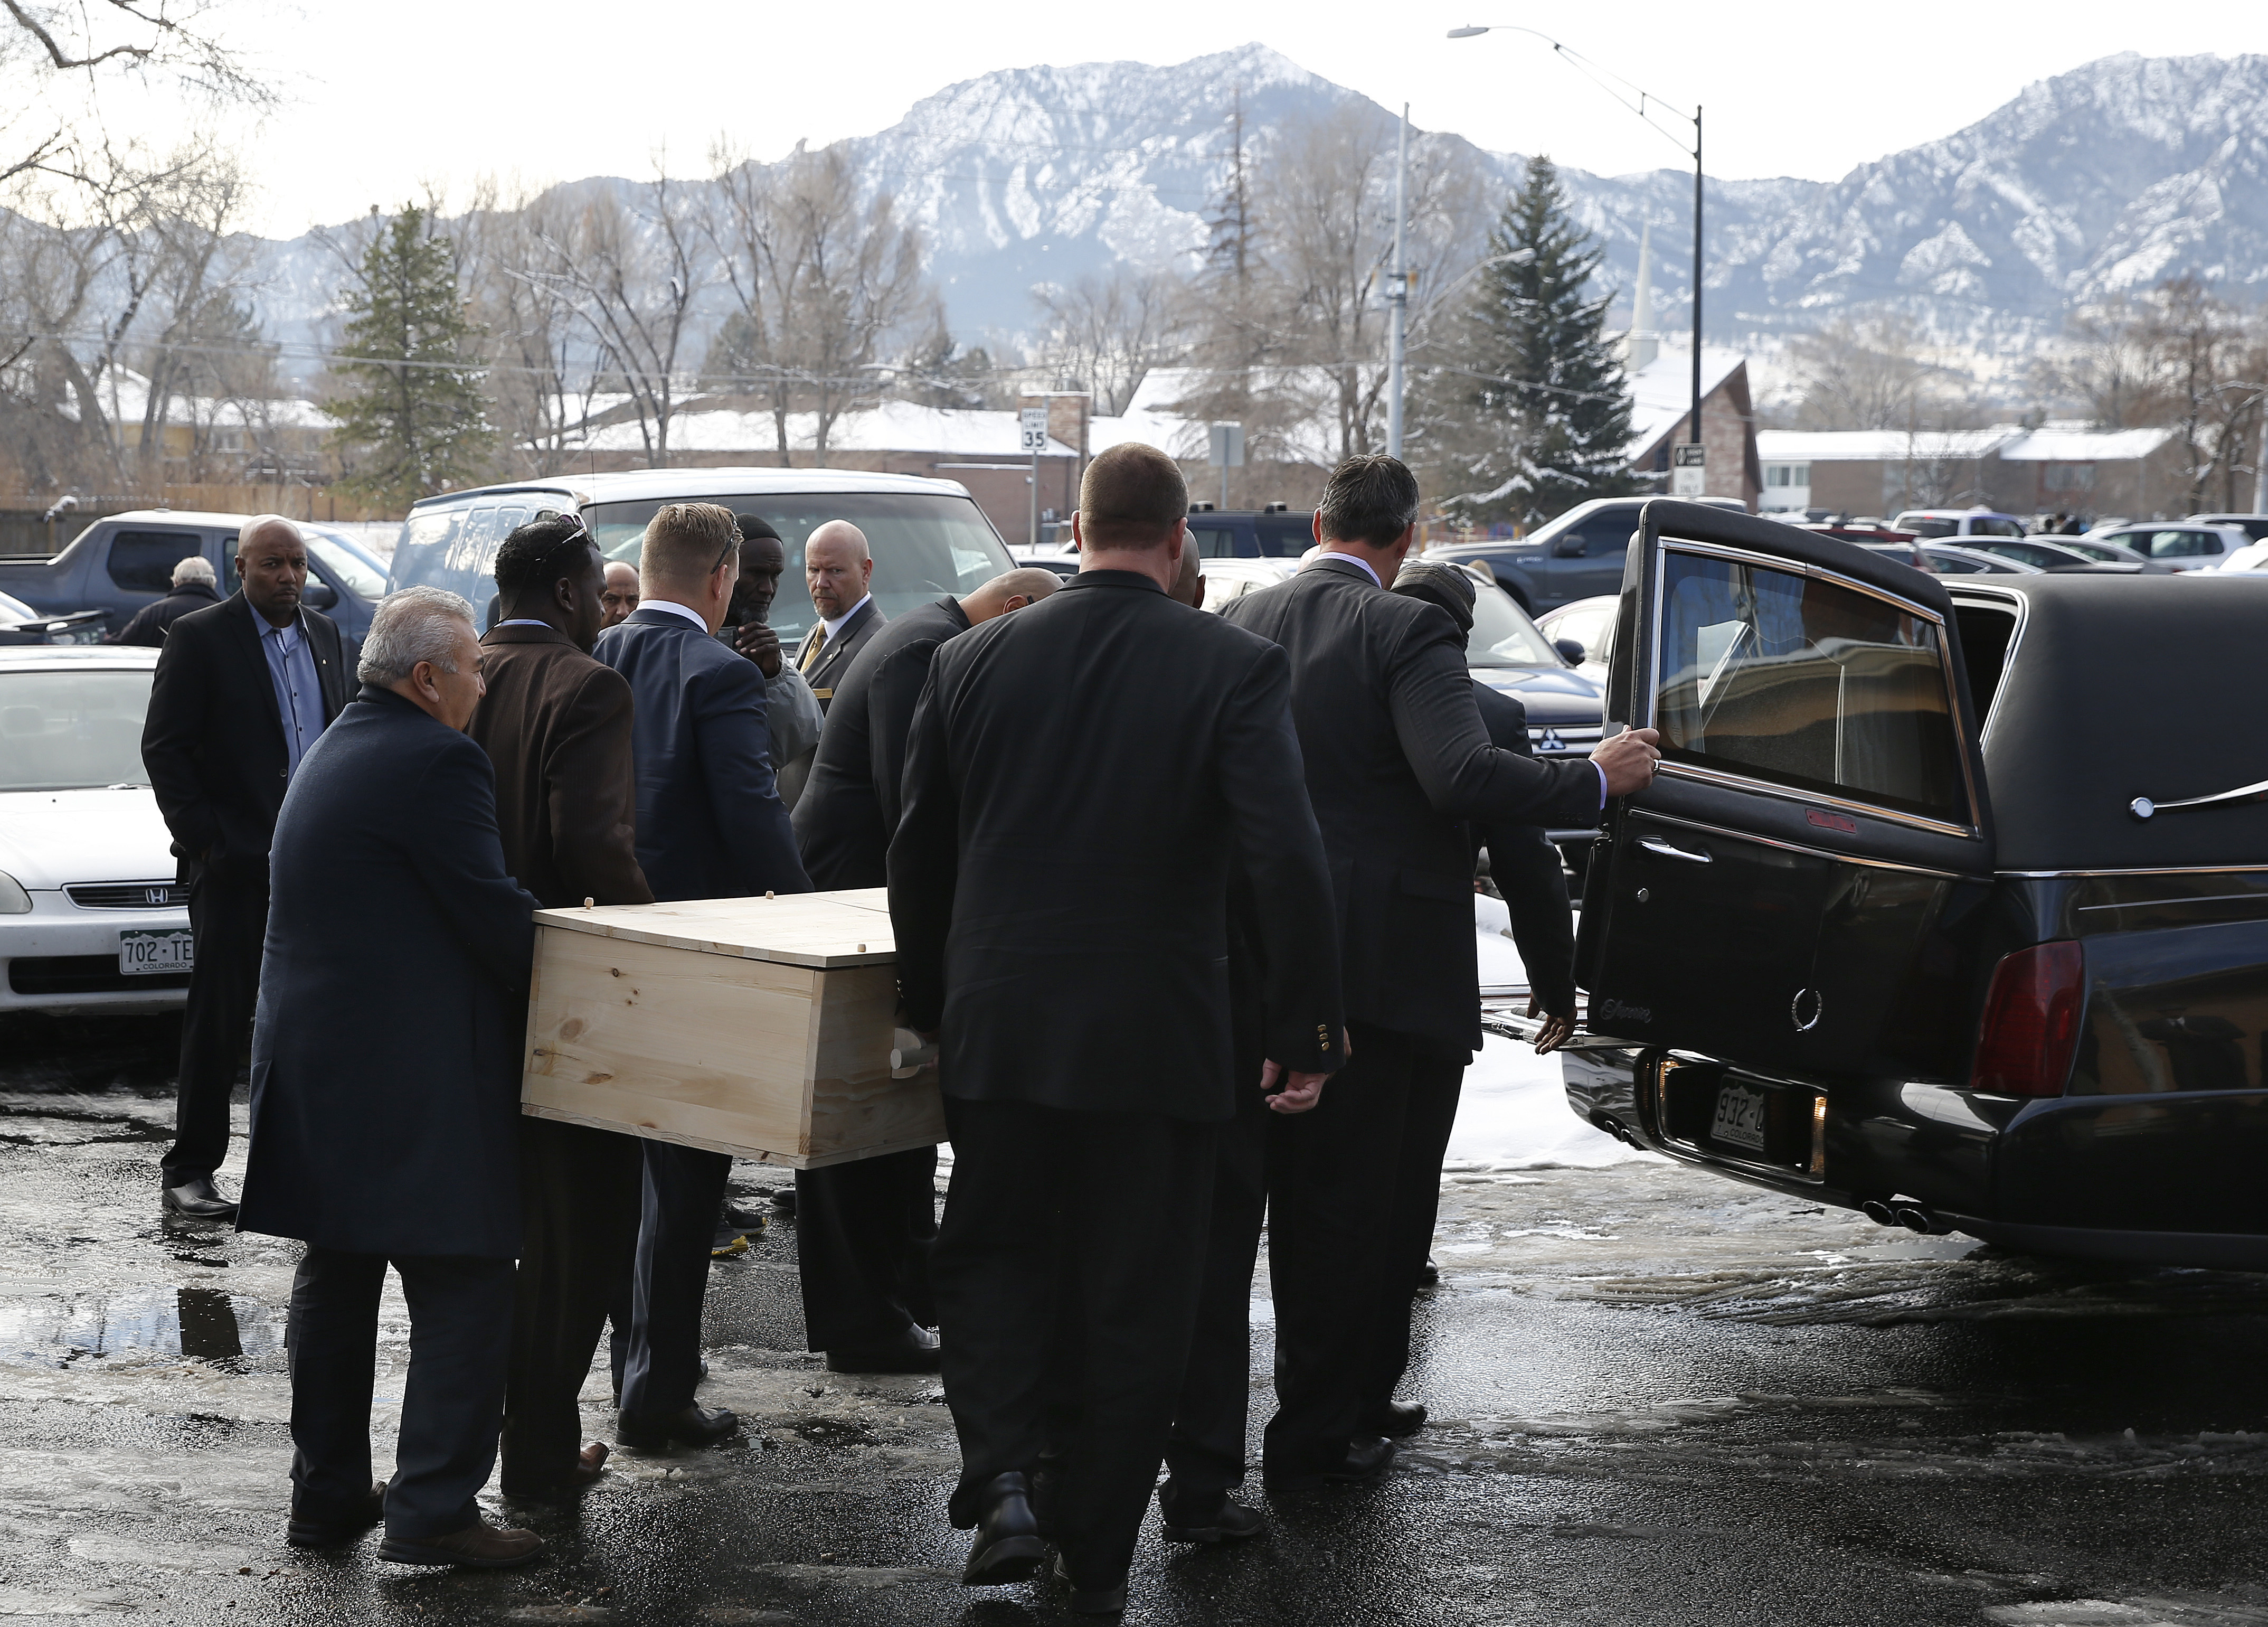 Pallbearers carry the casket for  late Heisman Trophy winner and former Colorado running back Rashaan Salaam, following his funeral at the Islamic Center of Boulder, Friday, Dec. 9, 2016, in  Boulder, Colo. Former teammates joined family and friends to sa